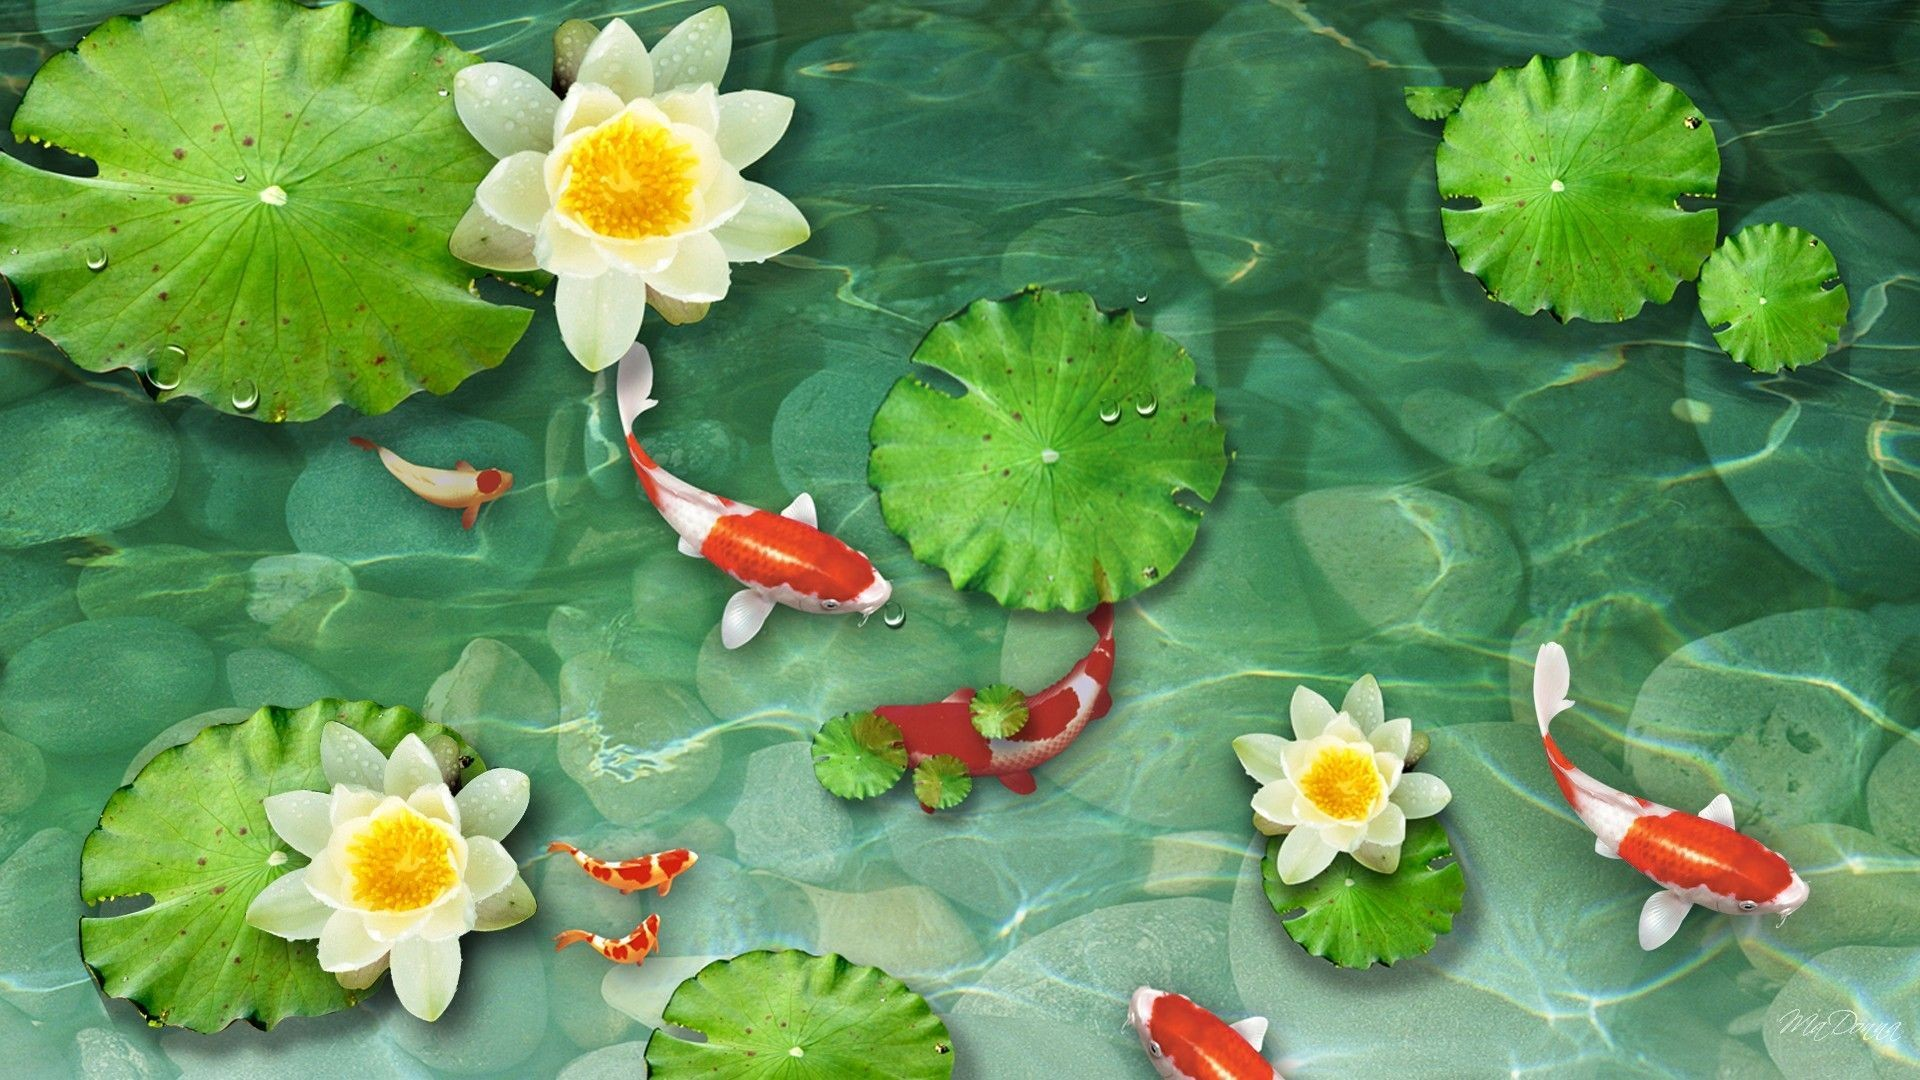 1920x1080 Koi Pond Wallpapers - Wallpaper Cave